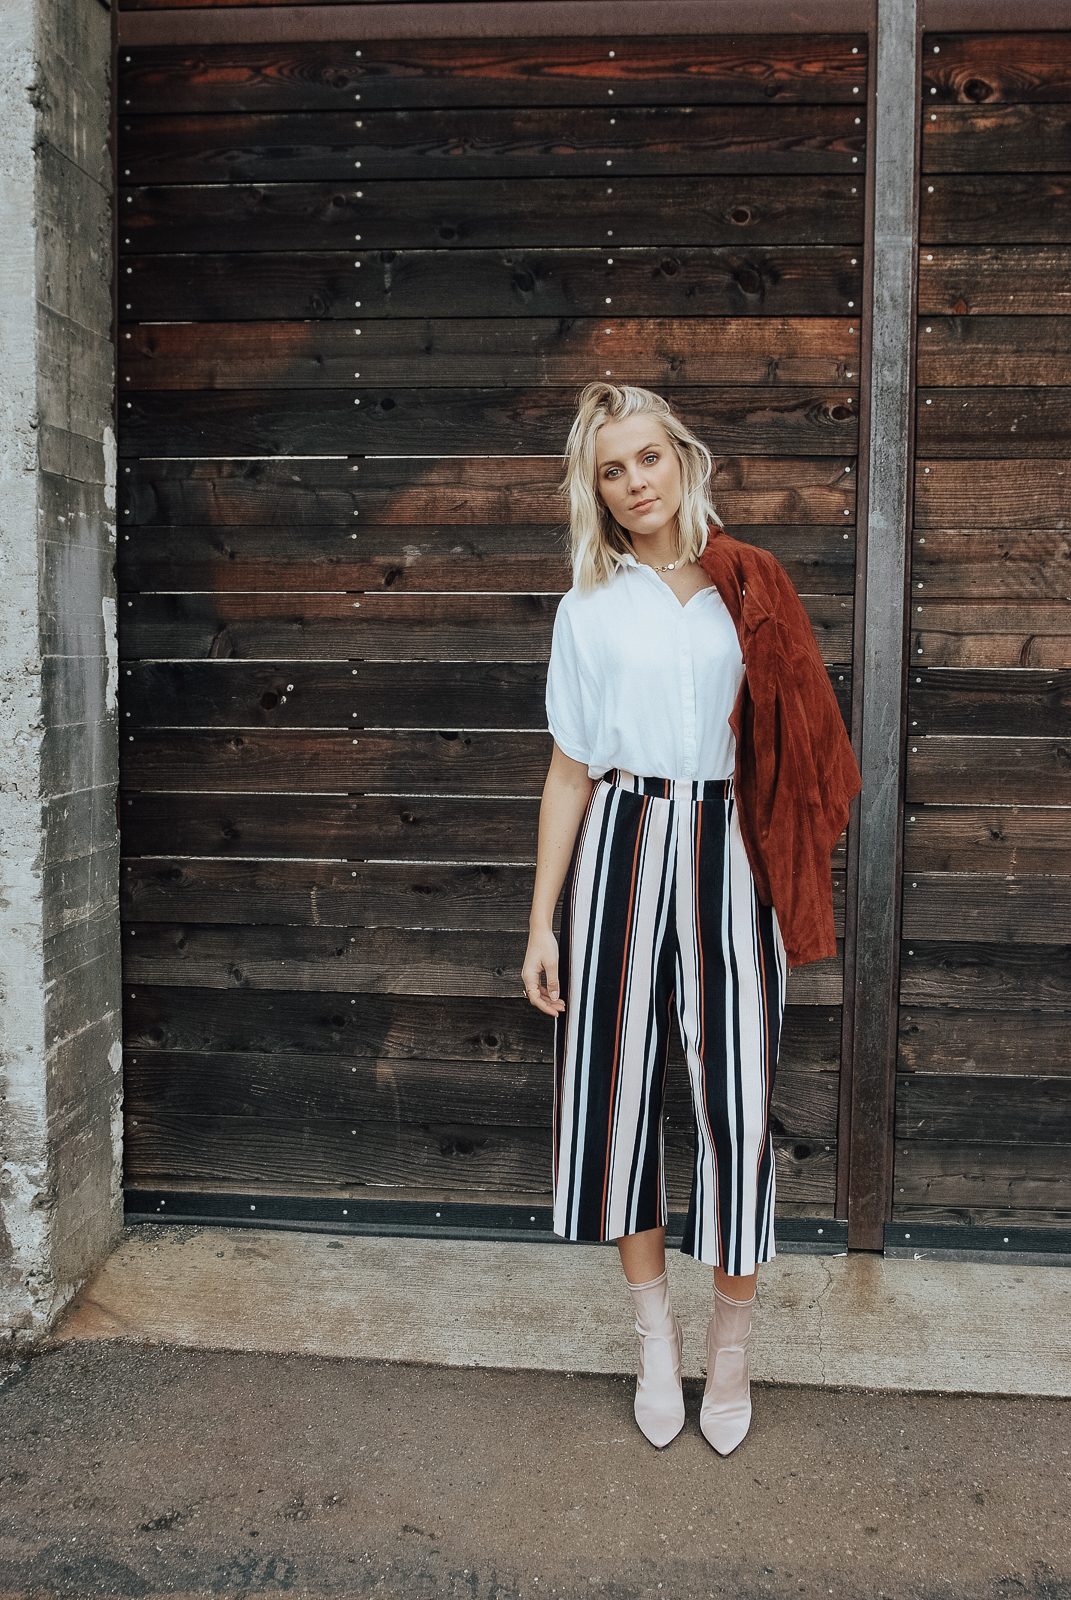 Autumn Sorelle | 70s Style + Tips For a Successful Shopping Trip